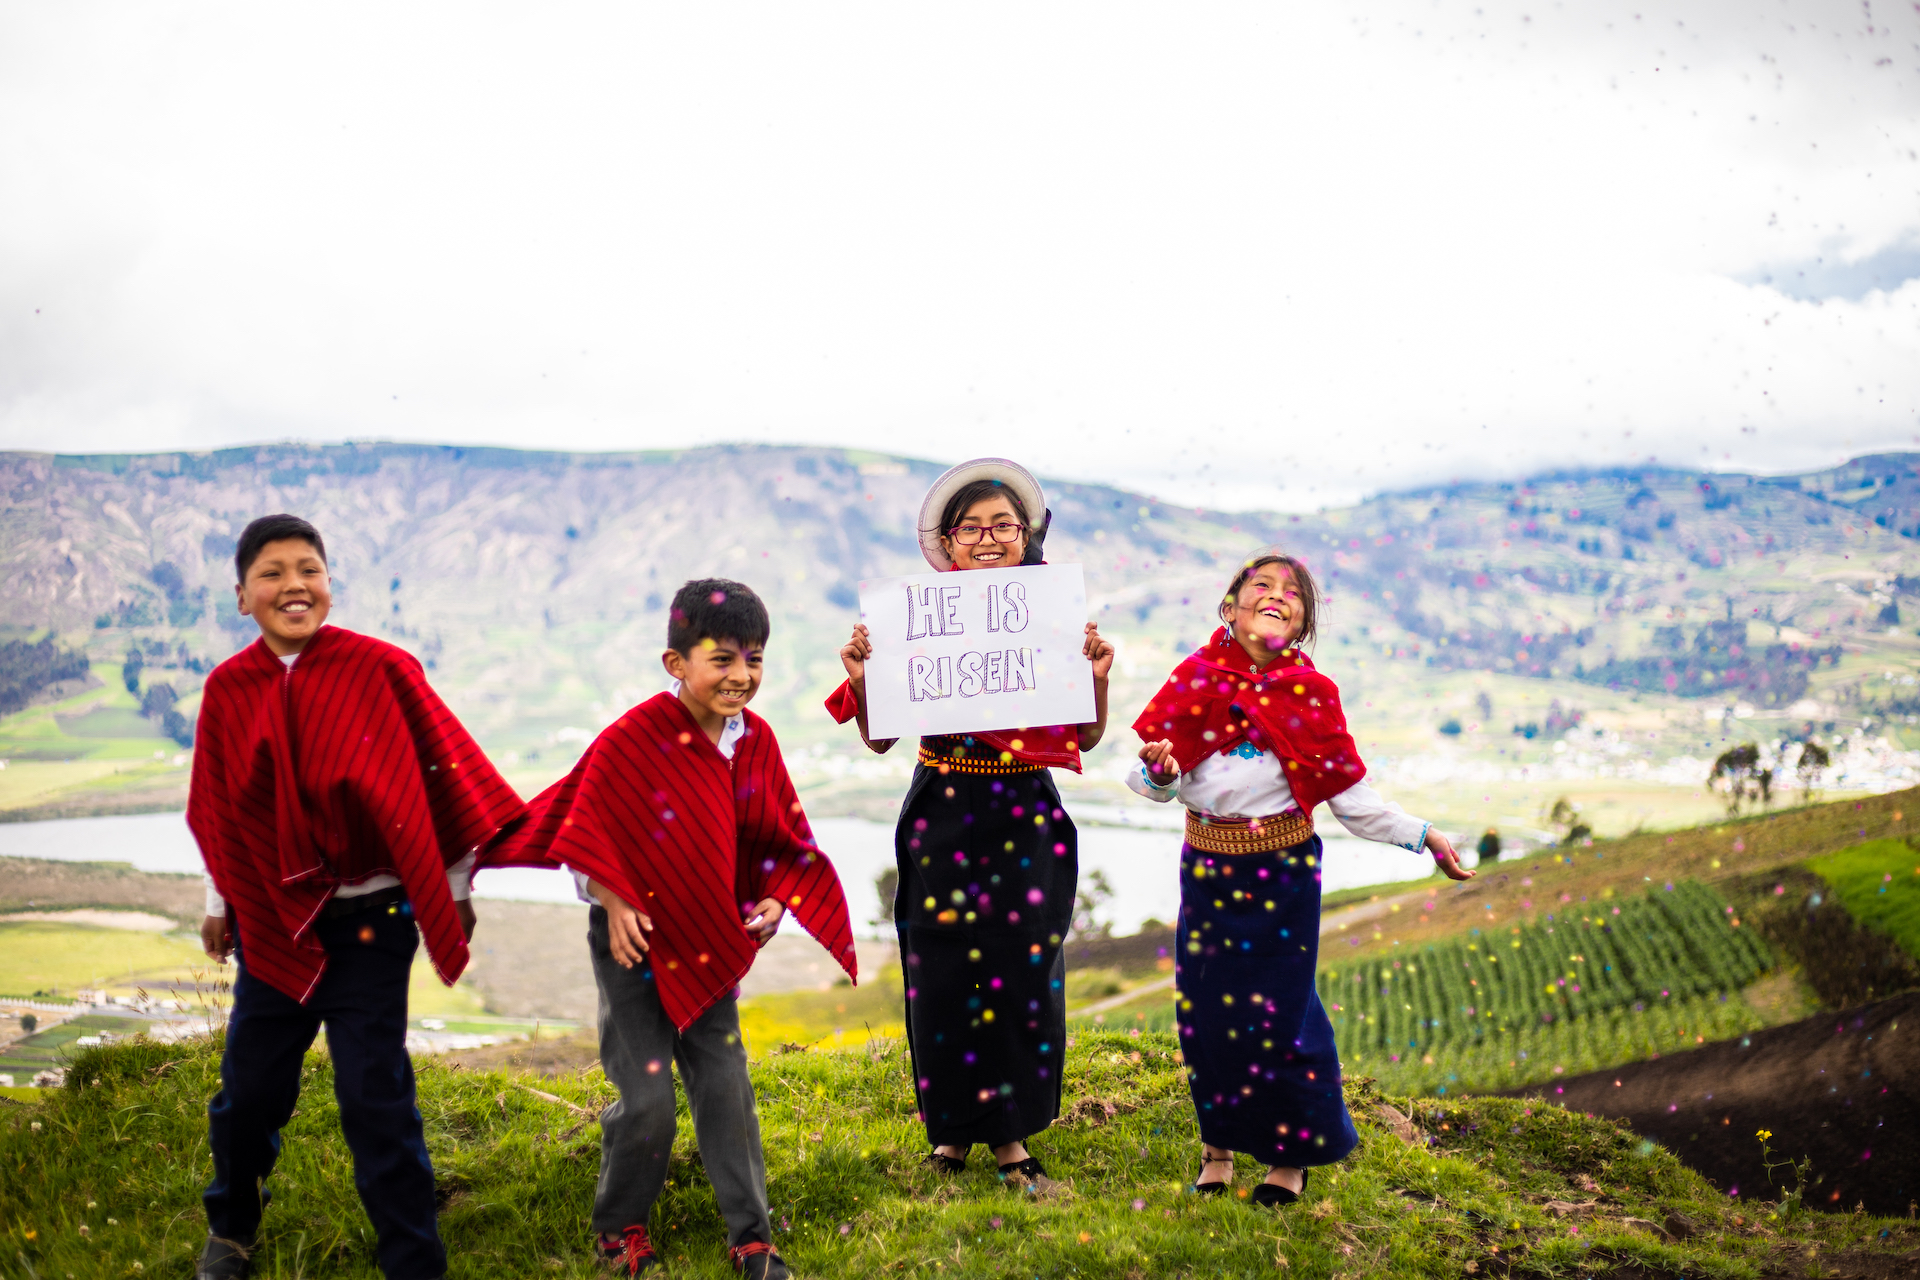 """Cristian, Mateo , Salome, and Sara are playing and throwing confetti while Salome holds a sign that says, """"He is risen."""" They are outside and there is a lake behind them."""